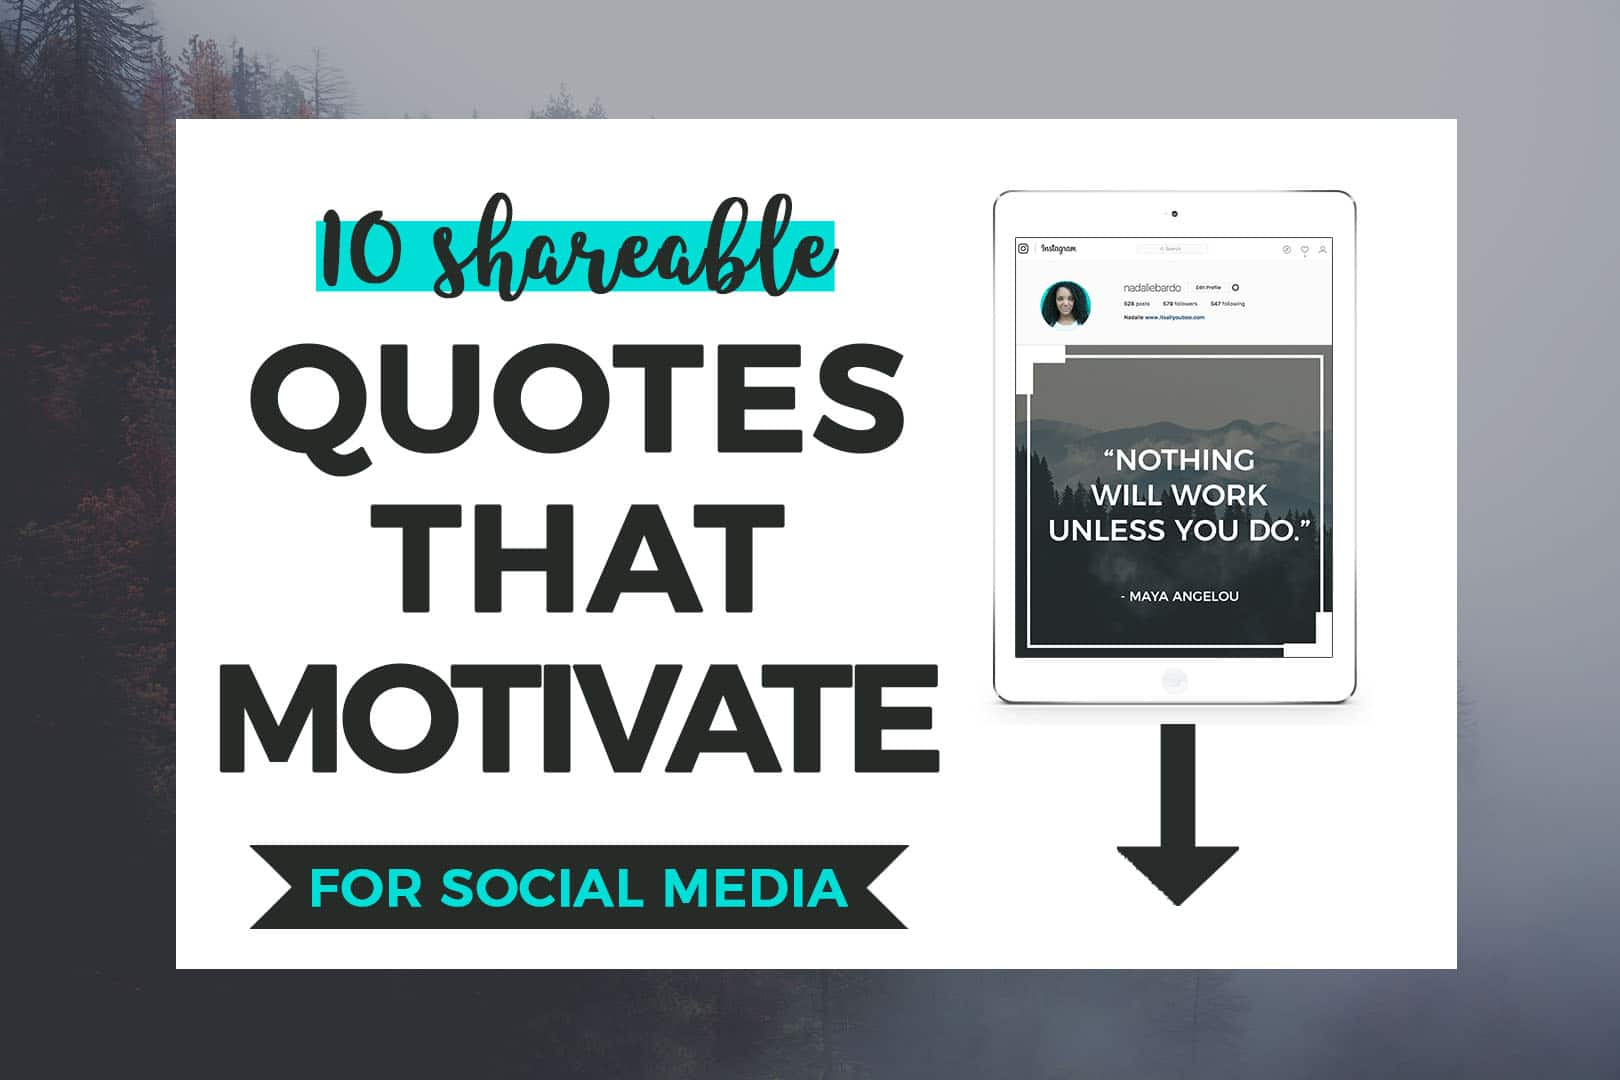 10 Shareable Quotes that Motivate